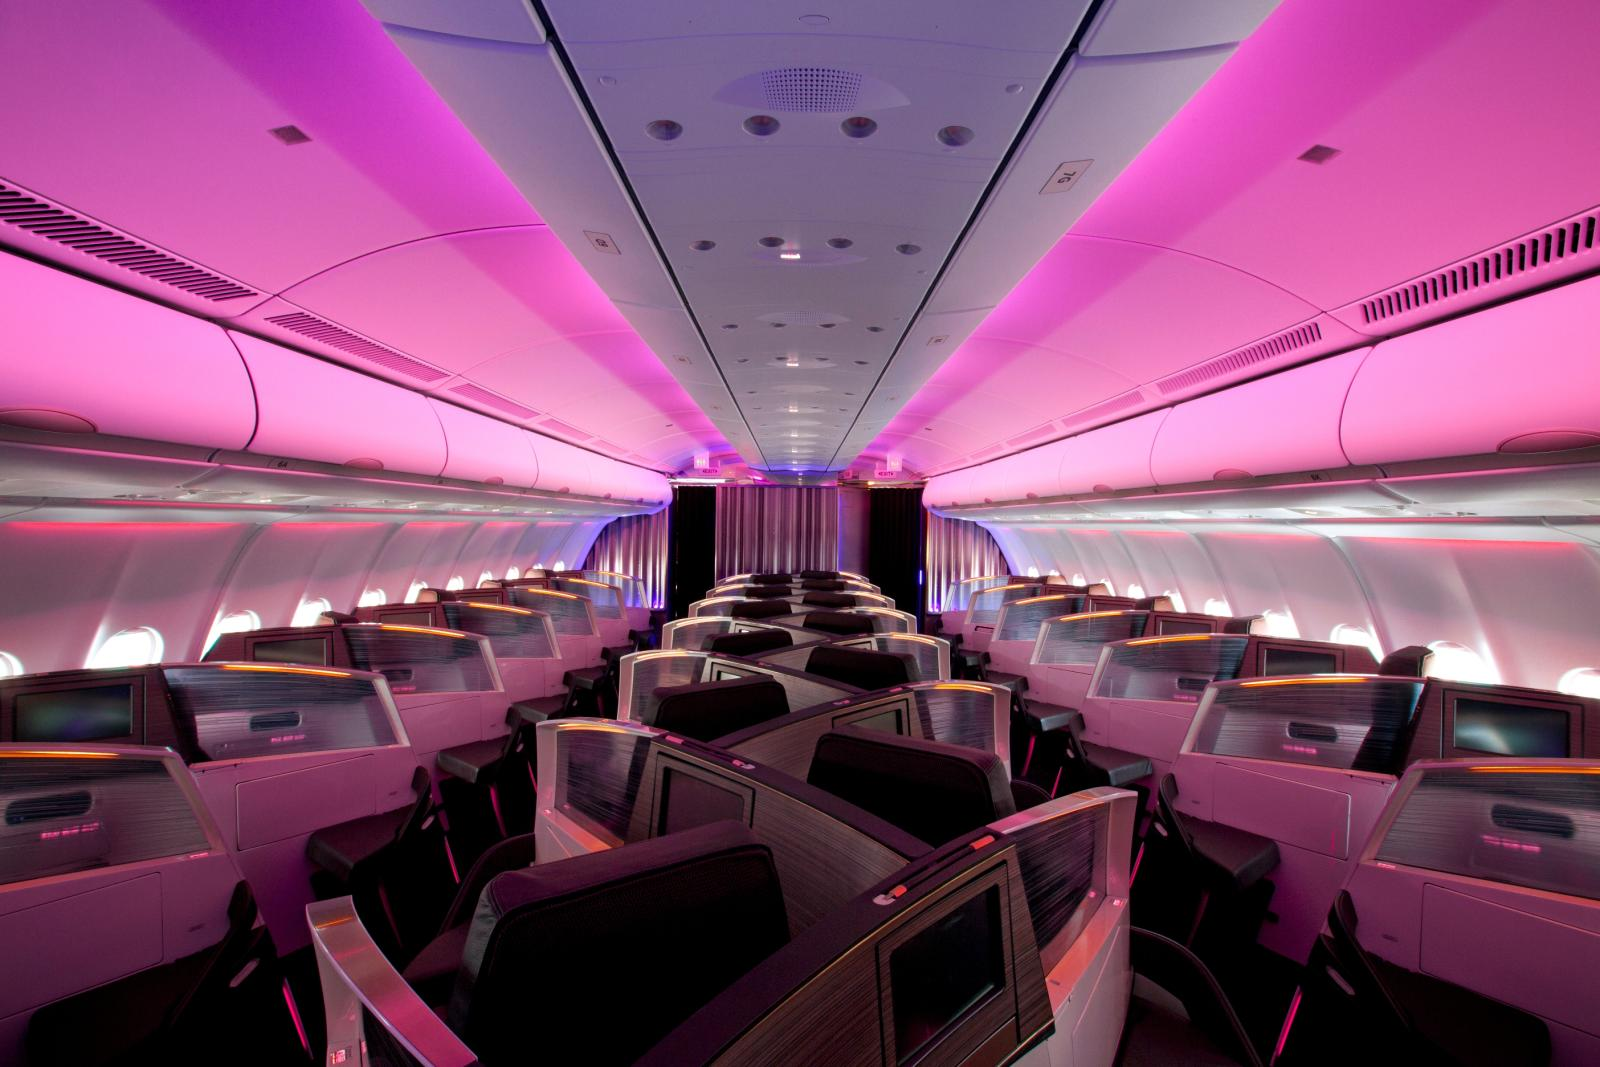 Virgin Atlantic's Flying Club: The Ultimate Guide | LoungeBuddy